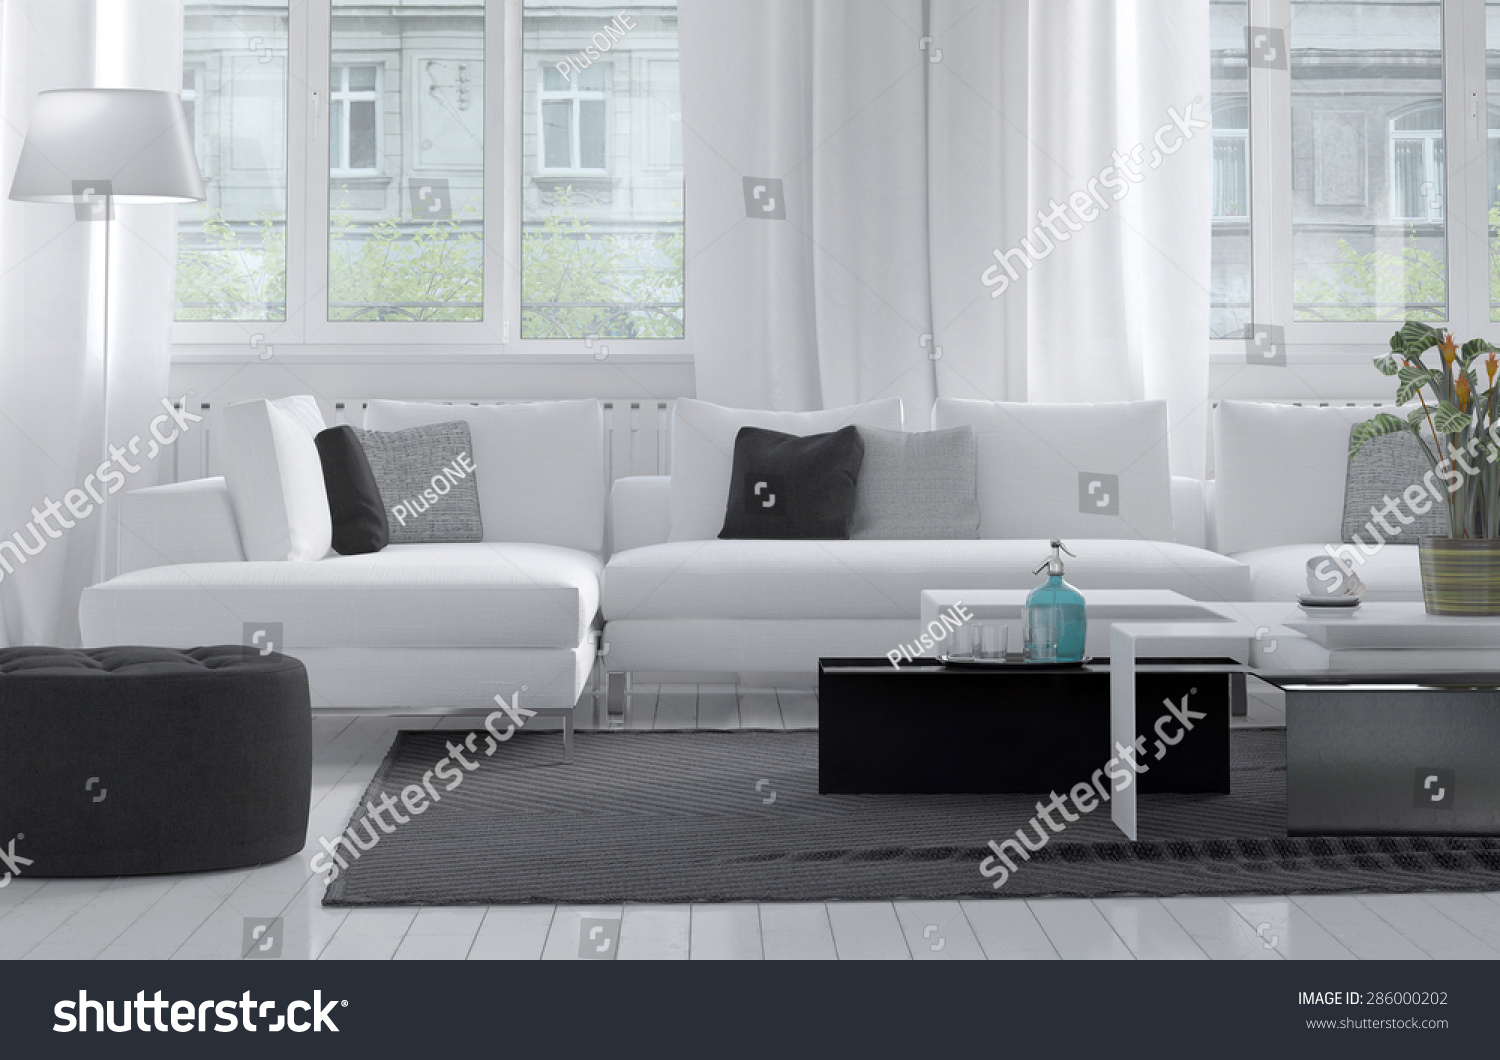 Comfortable Modern Living Room Interior With A Close Up View Of A